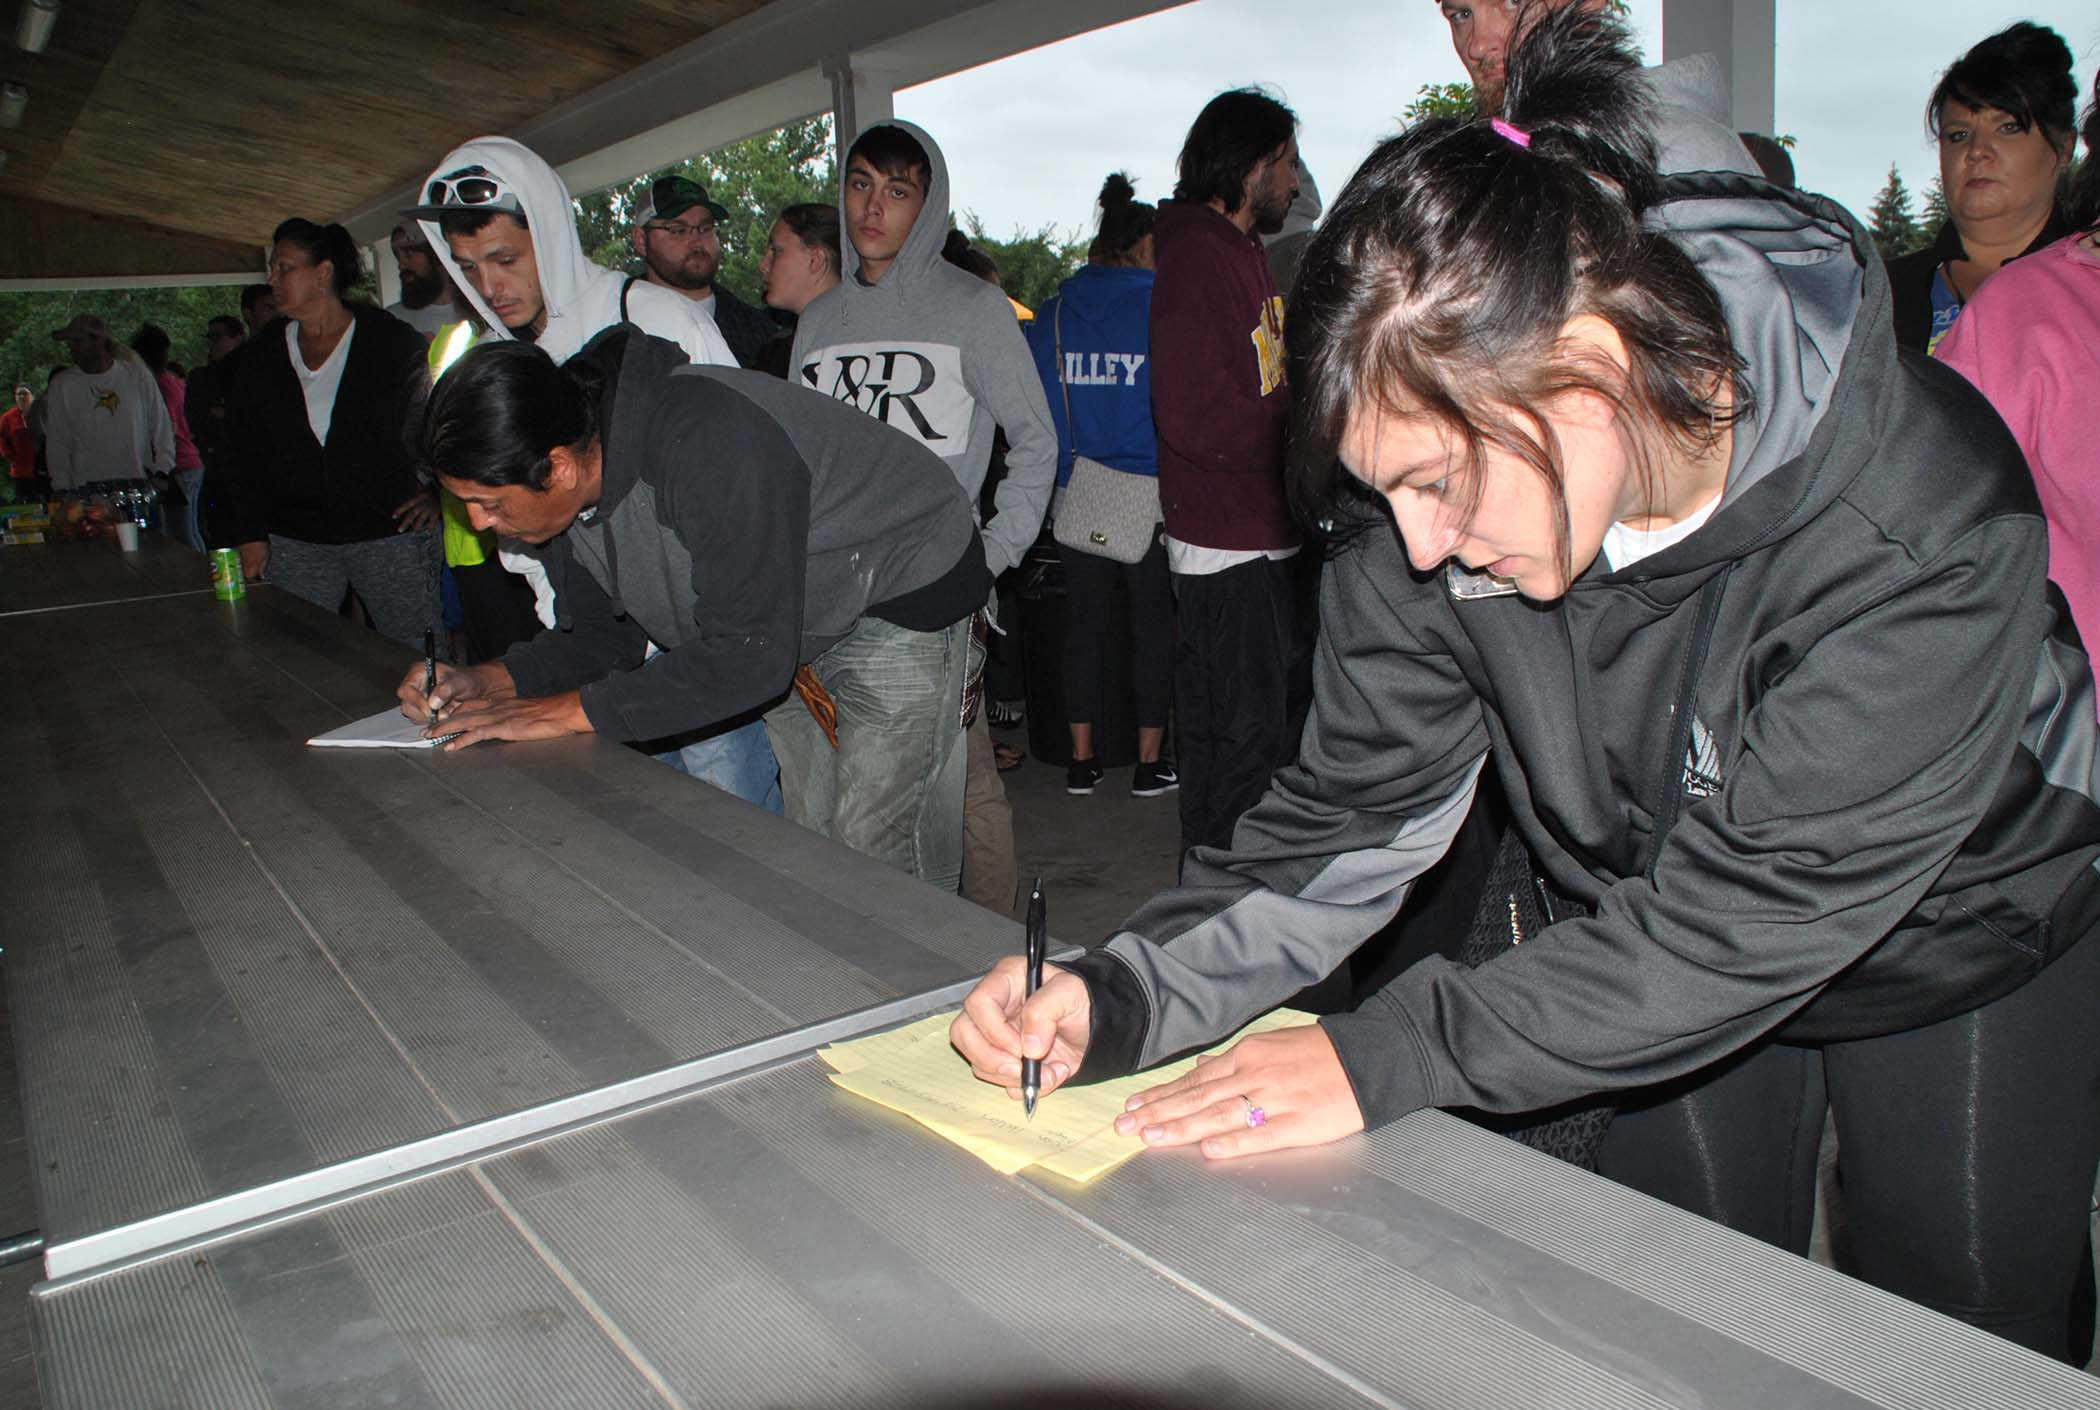 Search volunteers line up to write down names - photo by C.S. Hagen